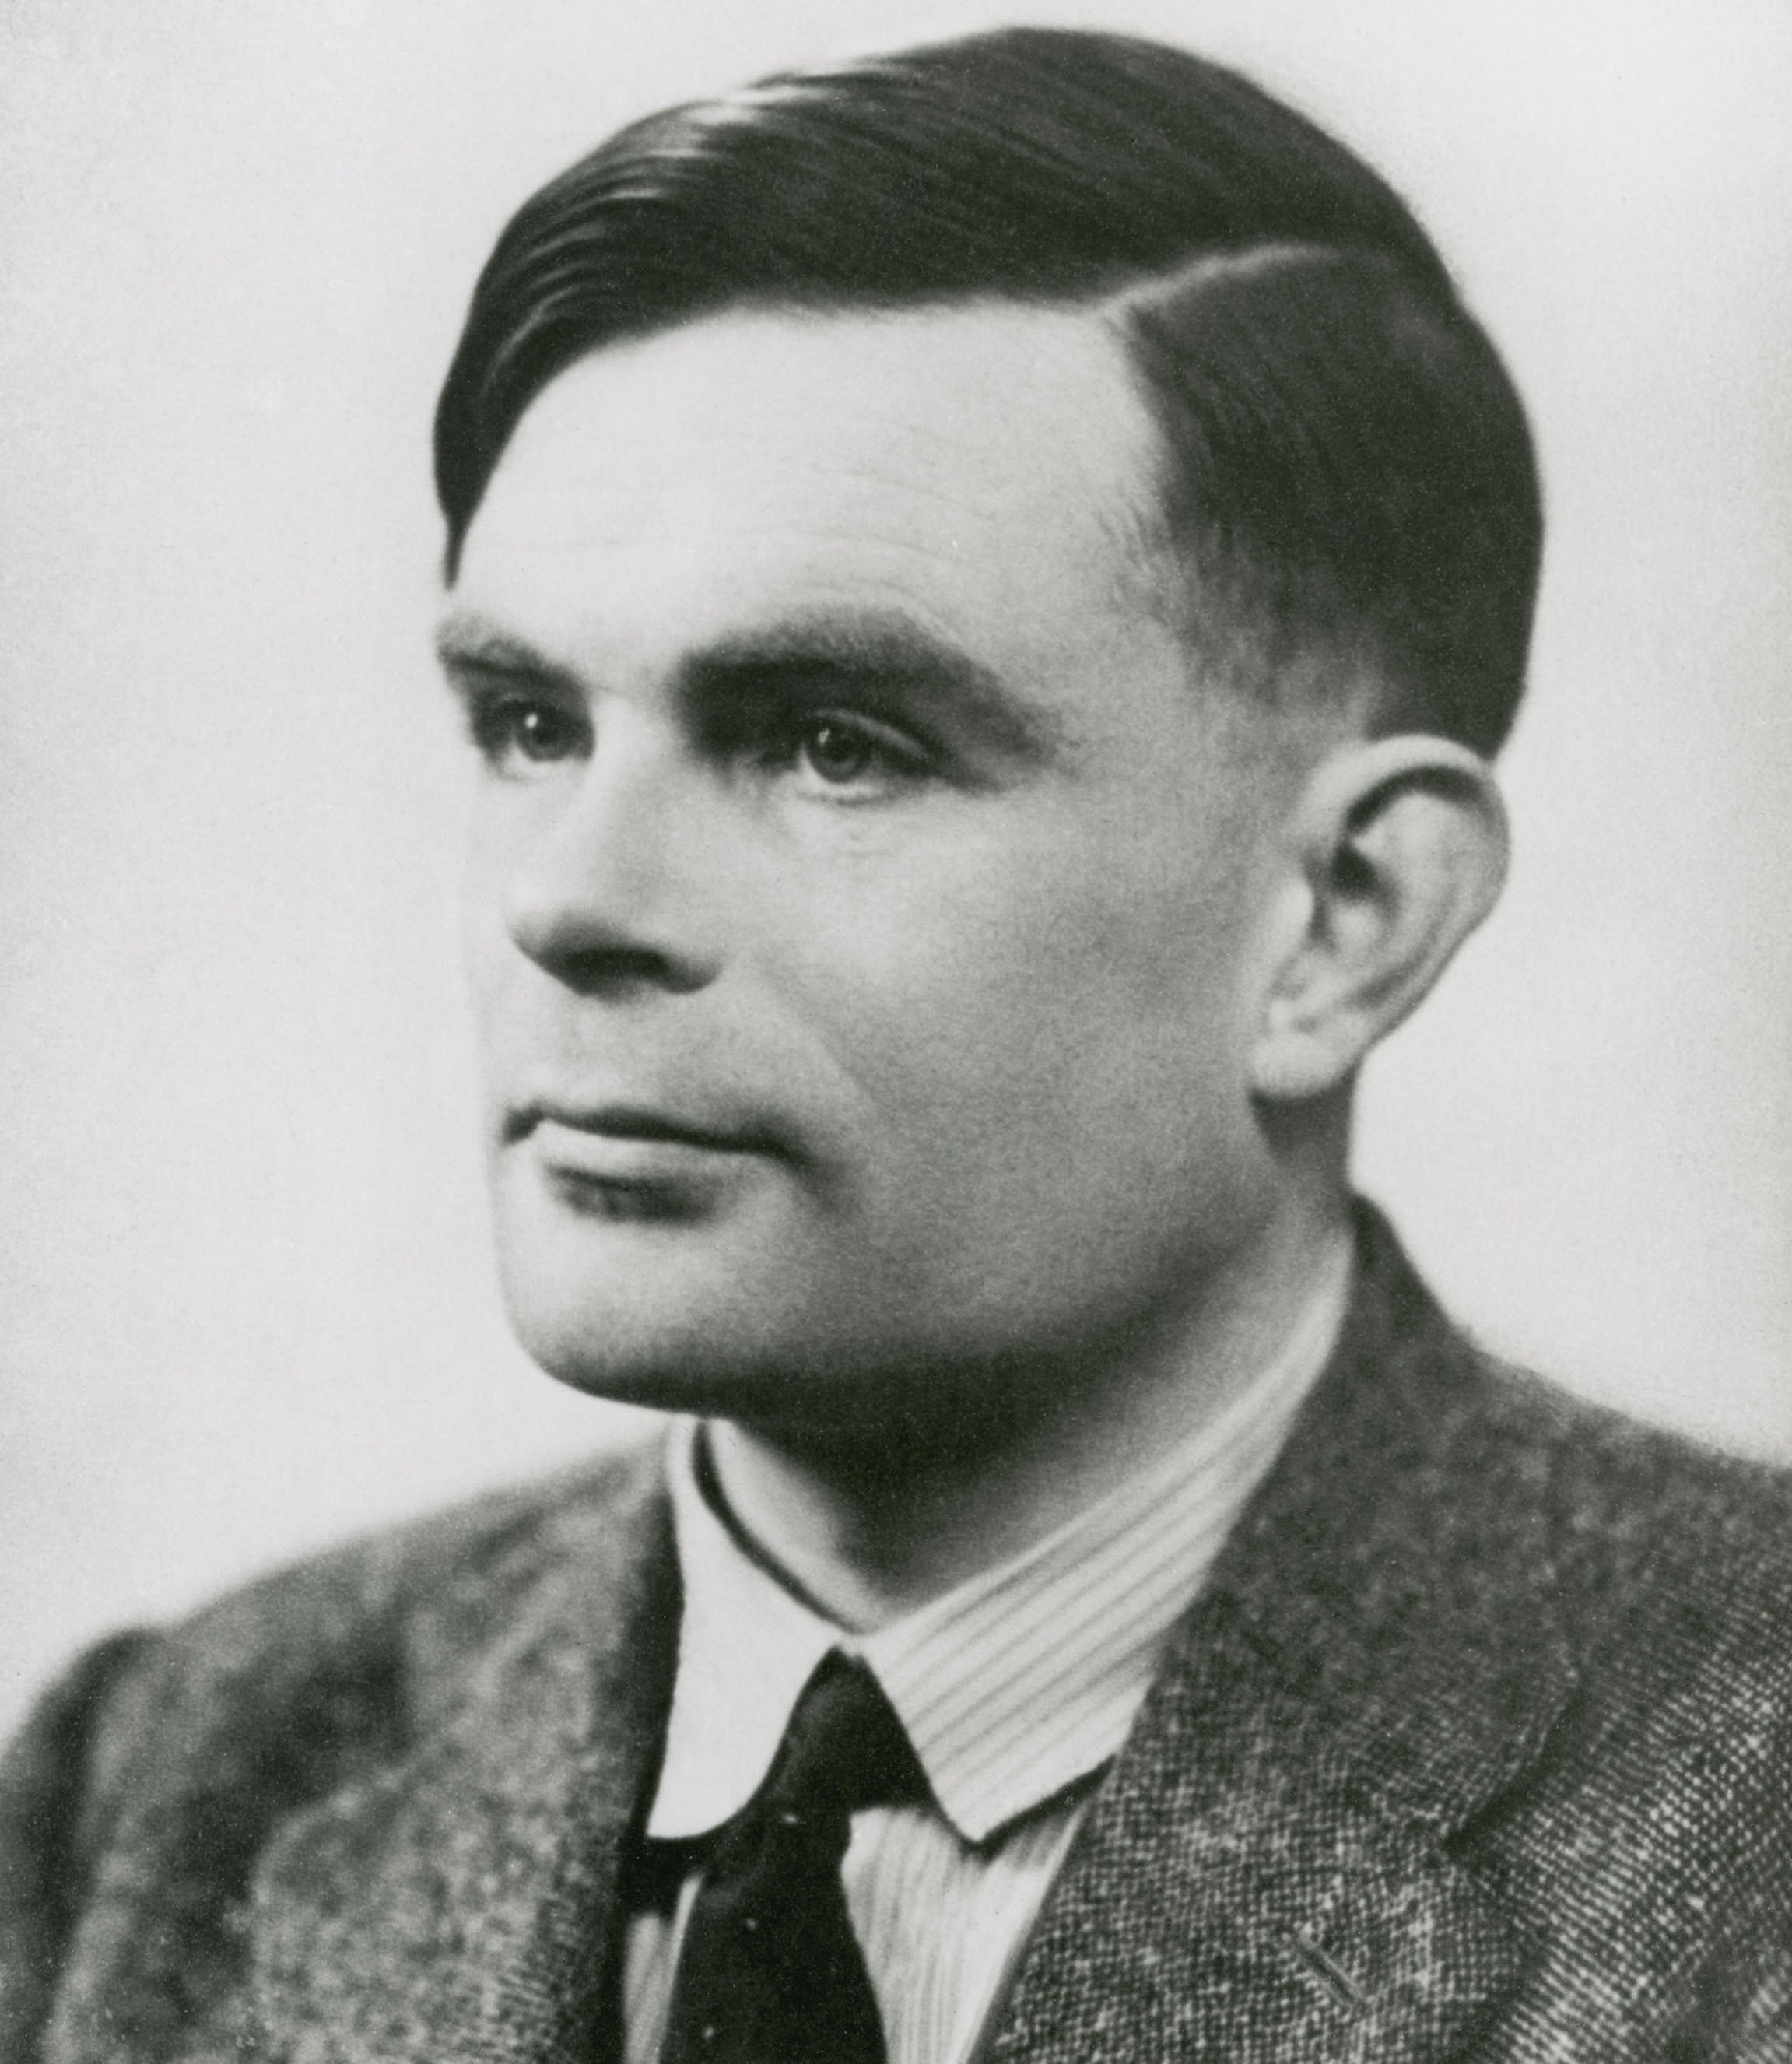 Alan Turing 29 March 1951 picture credit NPL Archive Science Museum1 20 Things You Probably Never Knew About Benedict Cumberbatch